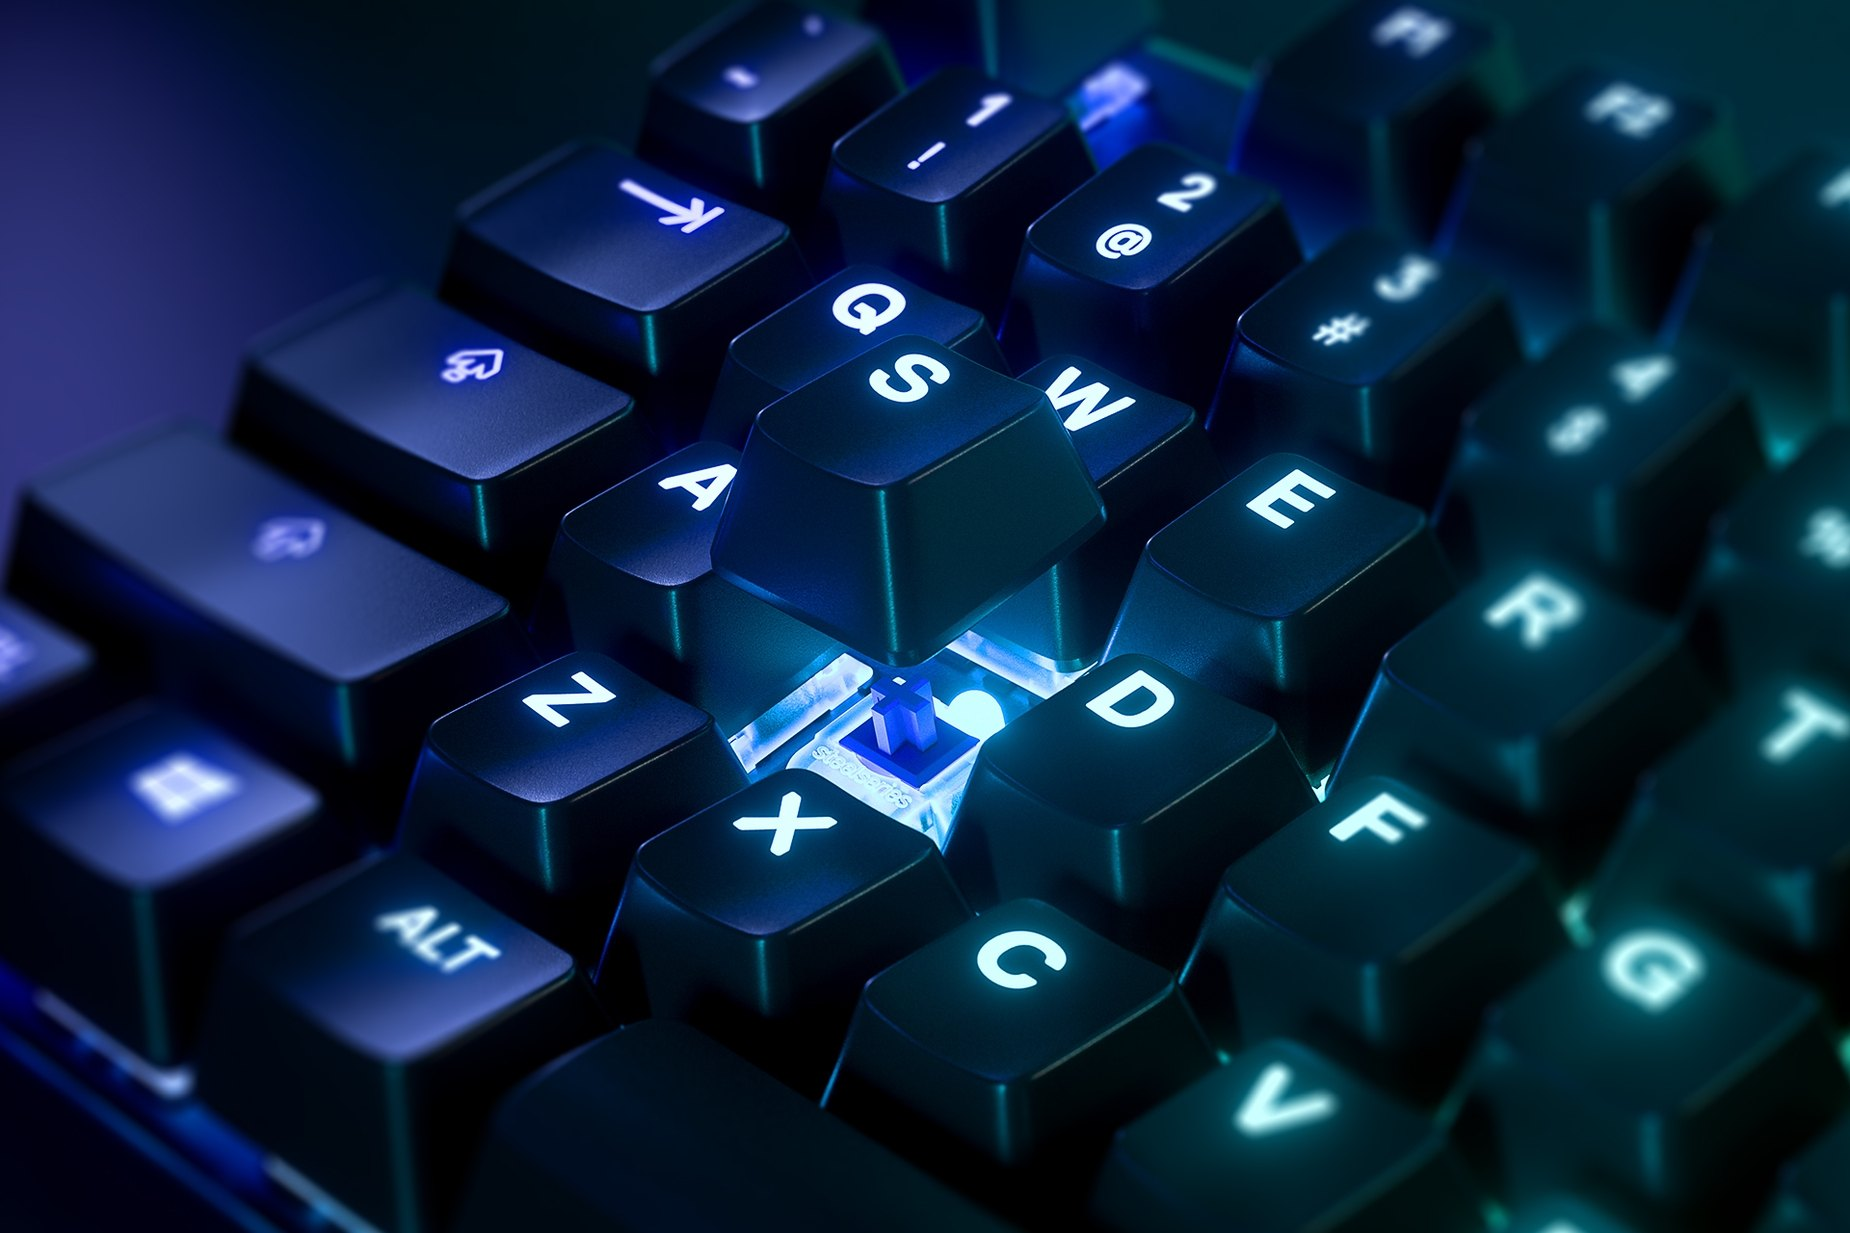 Zoomed in view of a single key on the Nordic-Apex 7 (Blue Switch) gaming keyboard, the key is raised up to show the SteelSeries QX2 Mechanical RGB Switch underneath